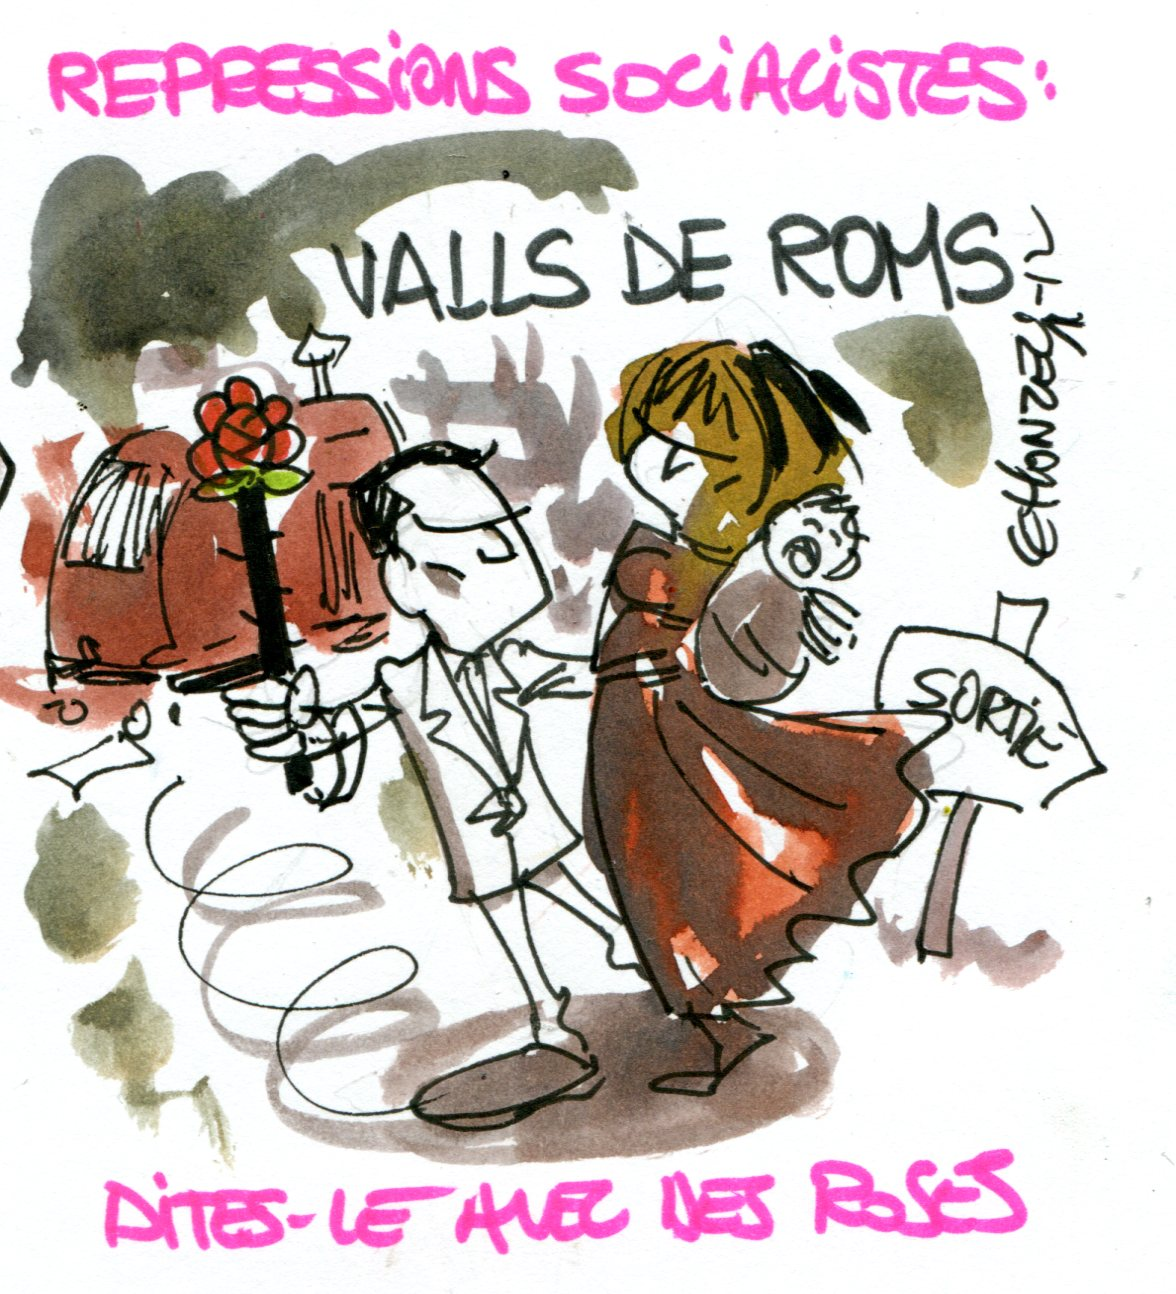 http://www.contrepoints.org/wp-content/uploads/2012/08/imgscan-contrepoints589-Valls-Roms.jpg?d126be